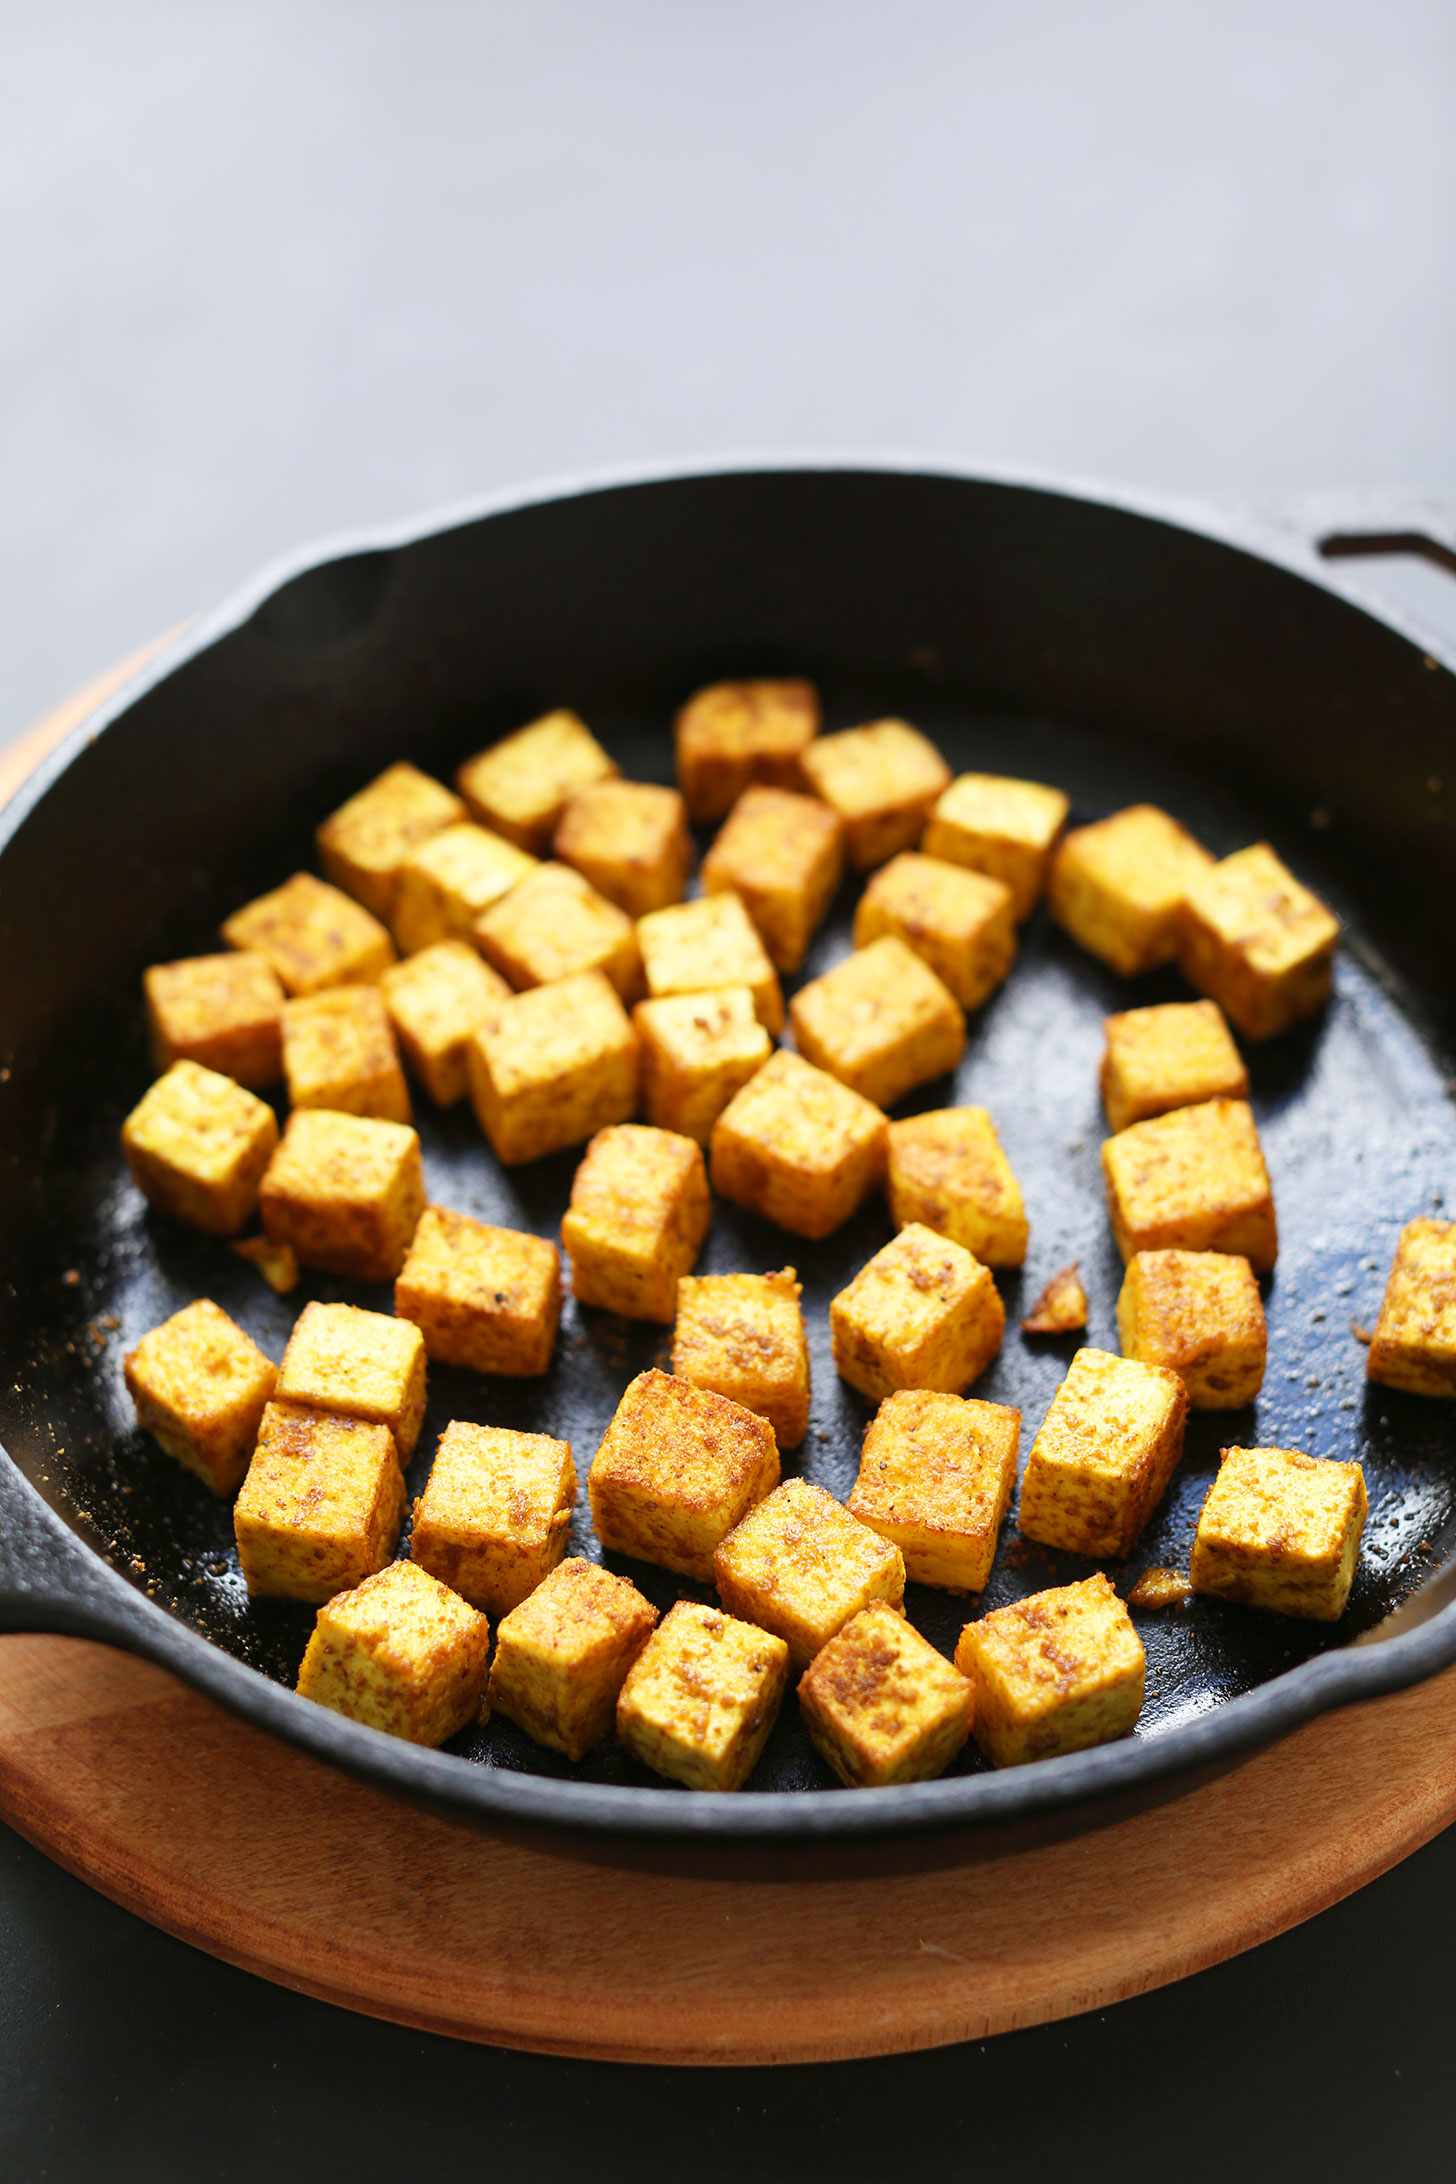 Tofu being sautéed with curry powder in a cast iron skillet